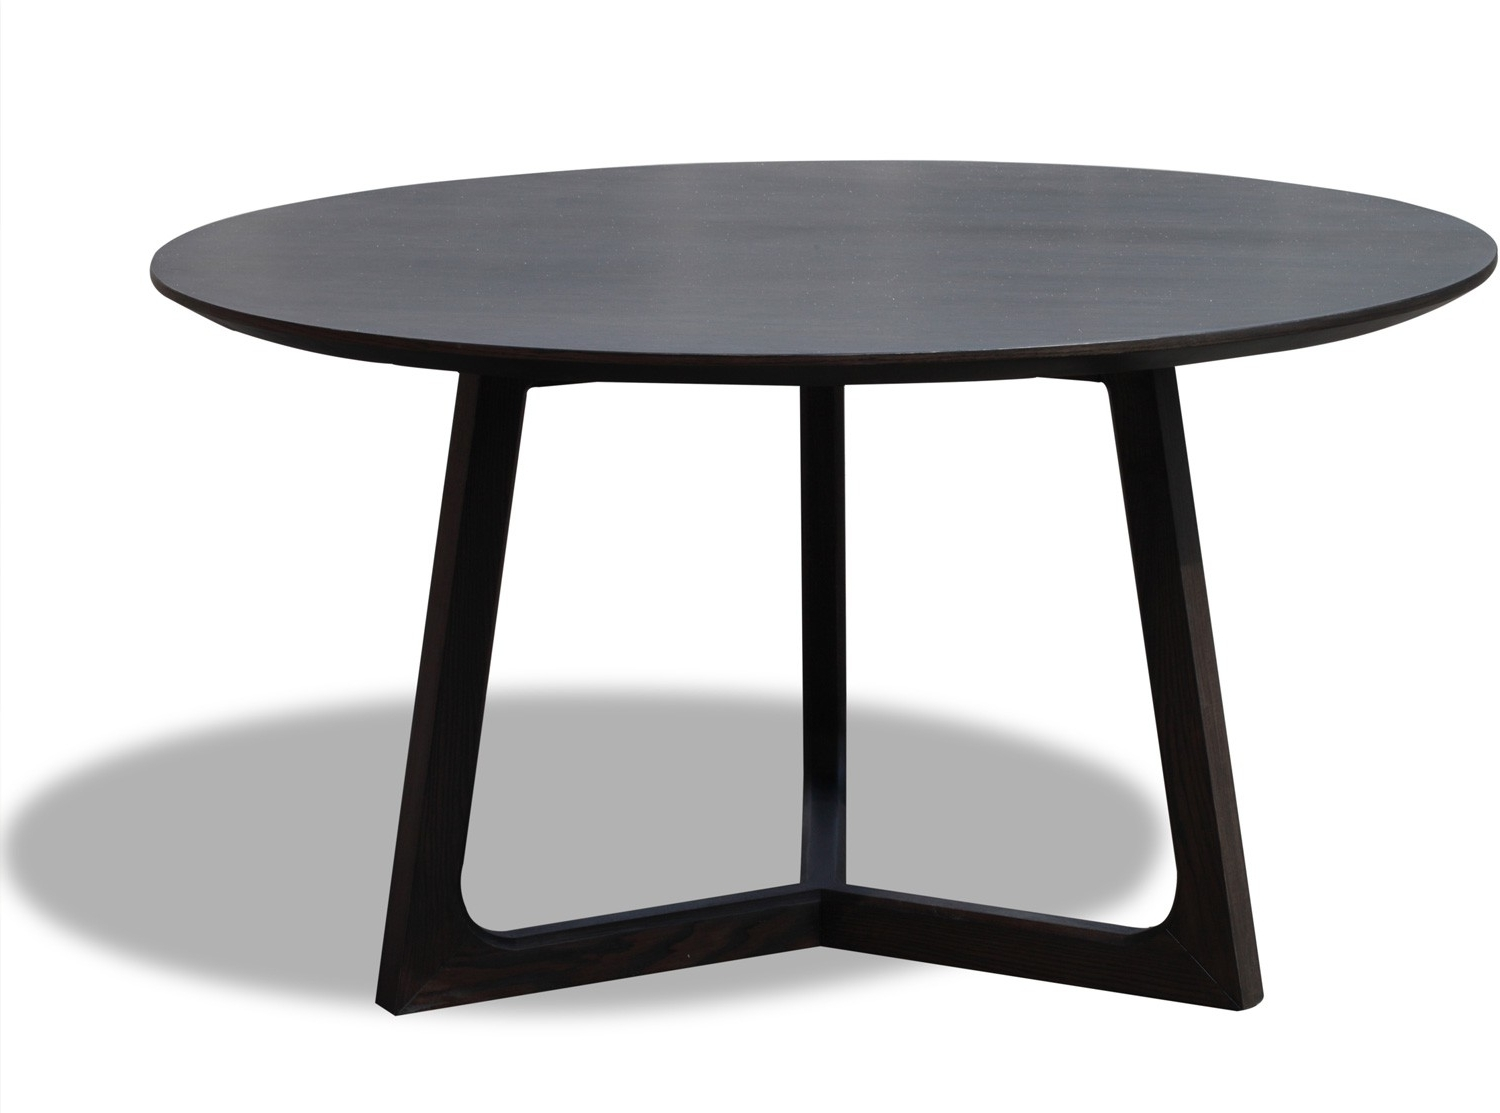 Black Circular Dining Tables Regarding Well Liked Significance Of Black Round Dining Tables – Home Decor Ideas (Gallery 2 of 25)